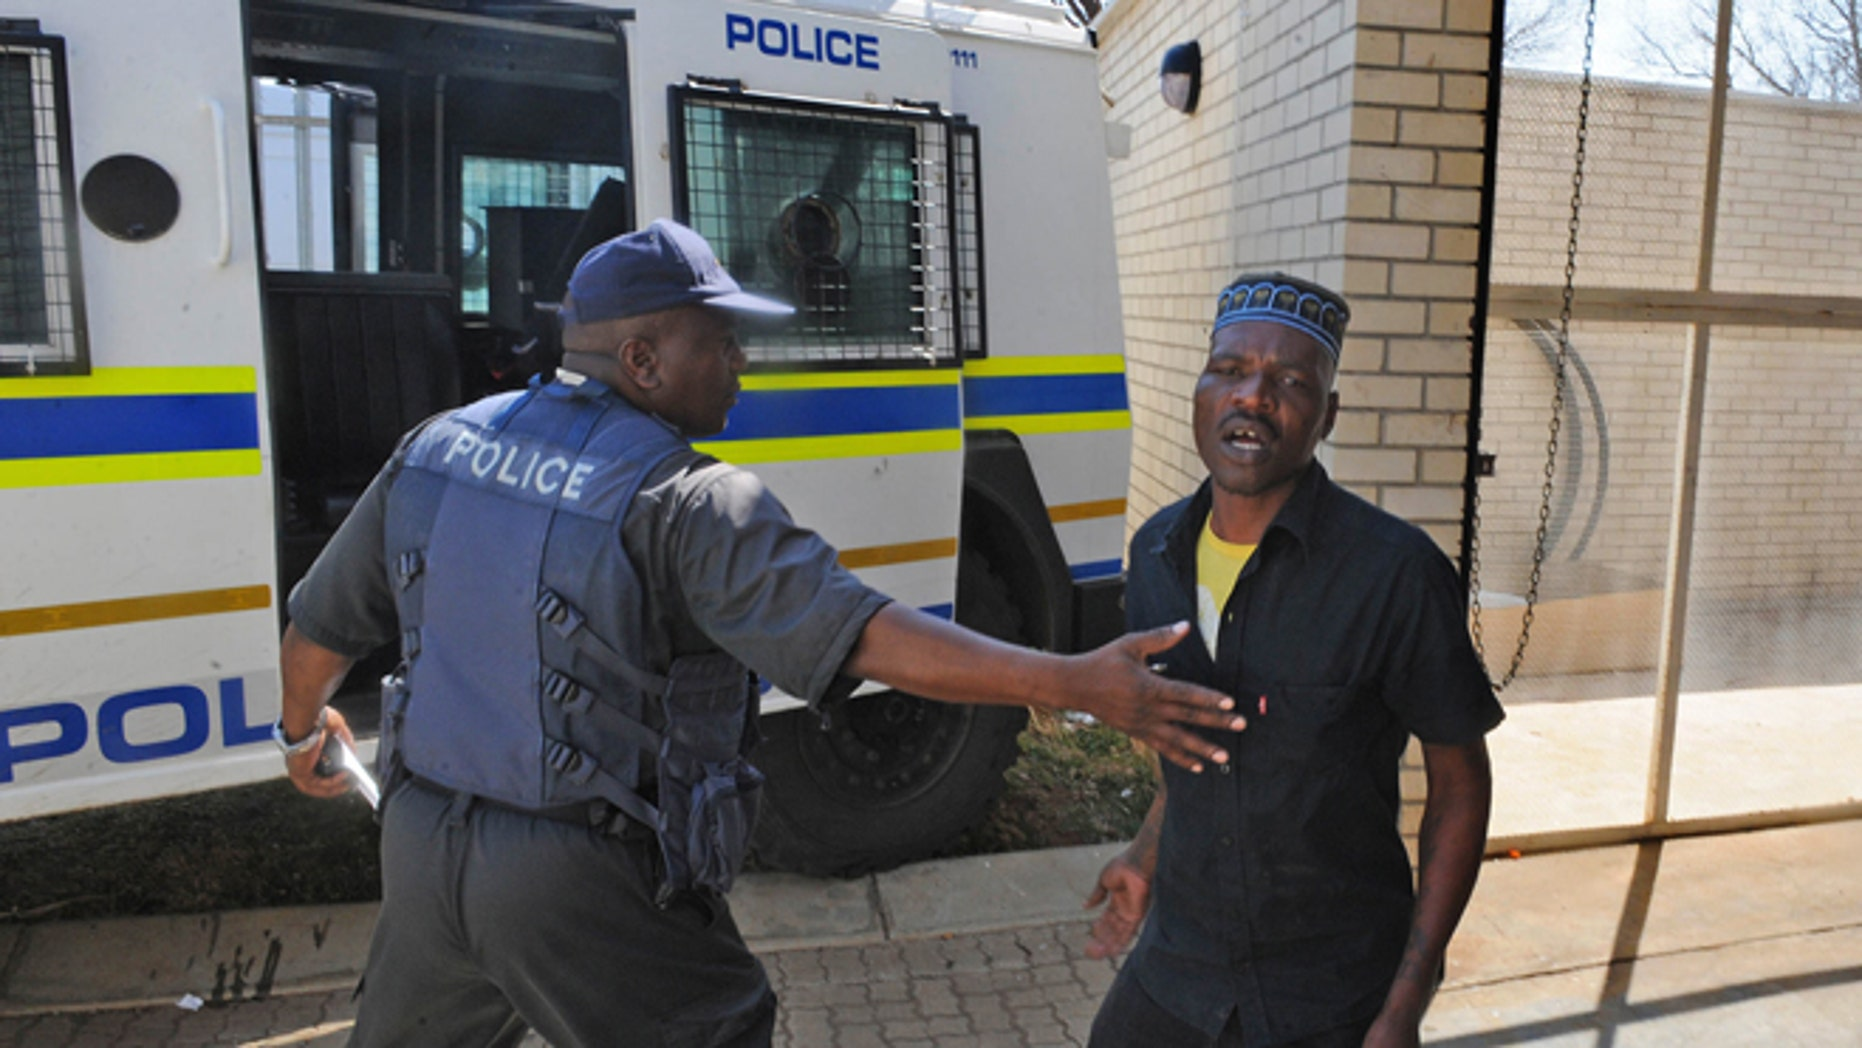 August 22, 2012: Chris Mahlangu, right, is led away from the court in Ventersdorp, South Africa after receiving a life sentence for the murder of right wing leader Eugene TerreBlanche.